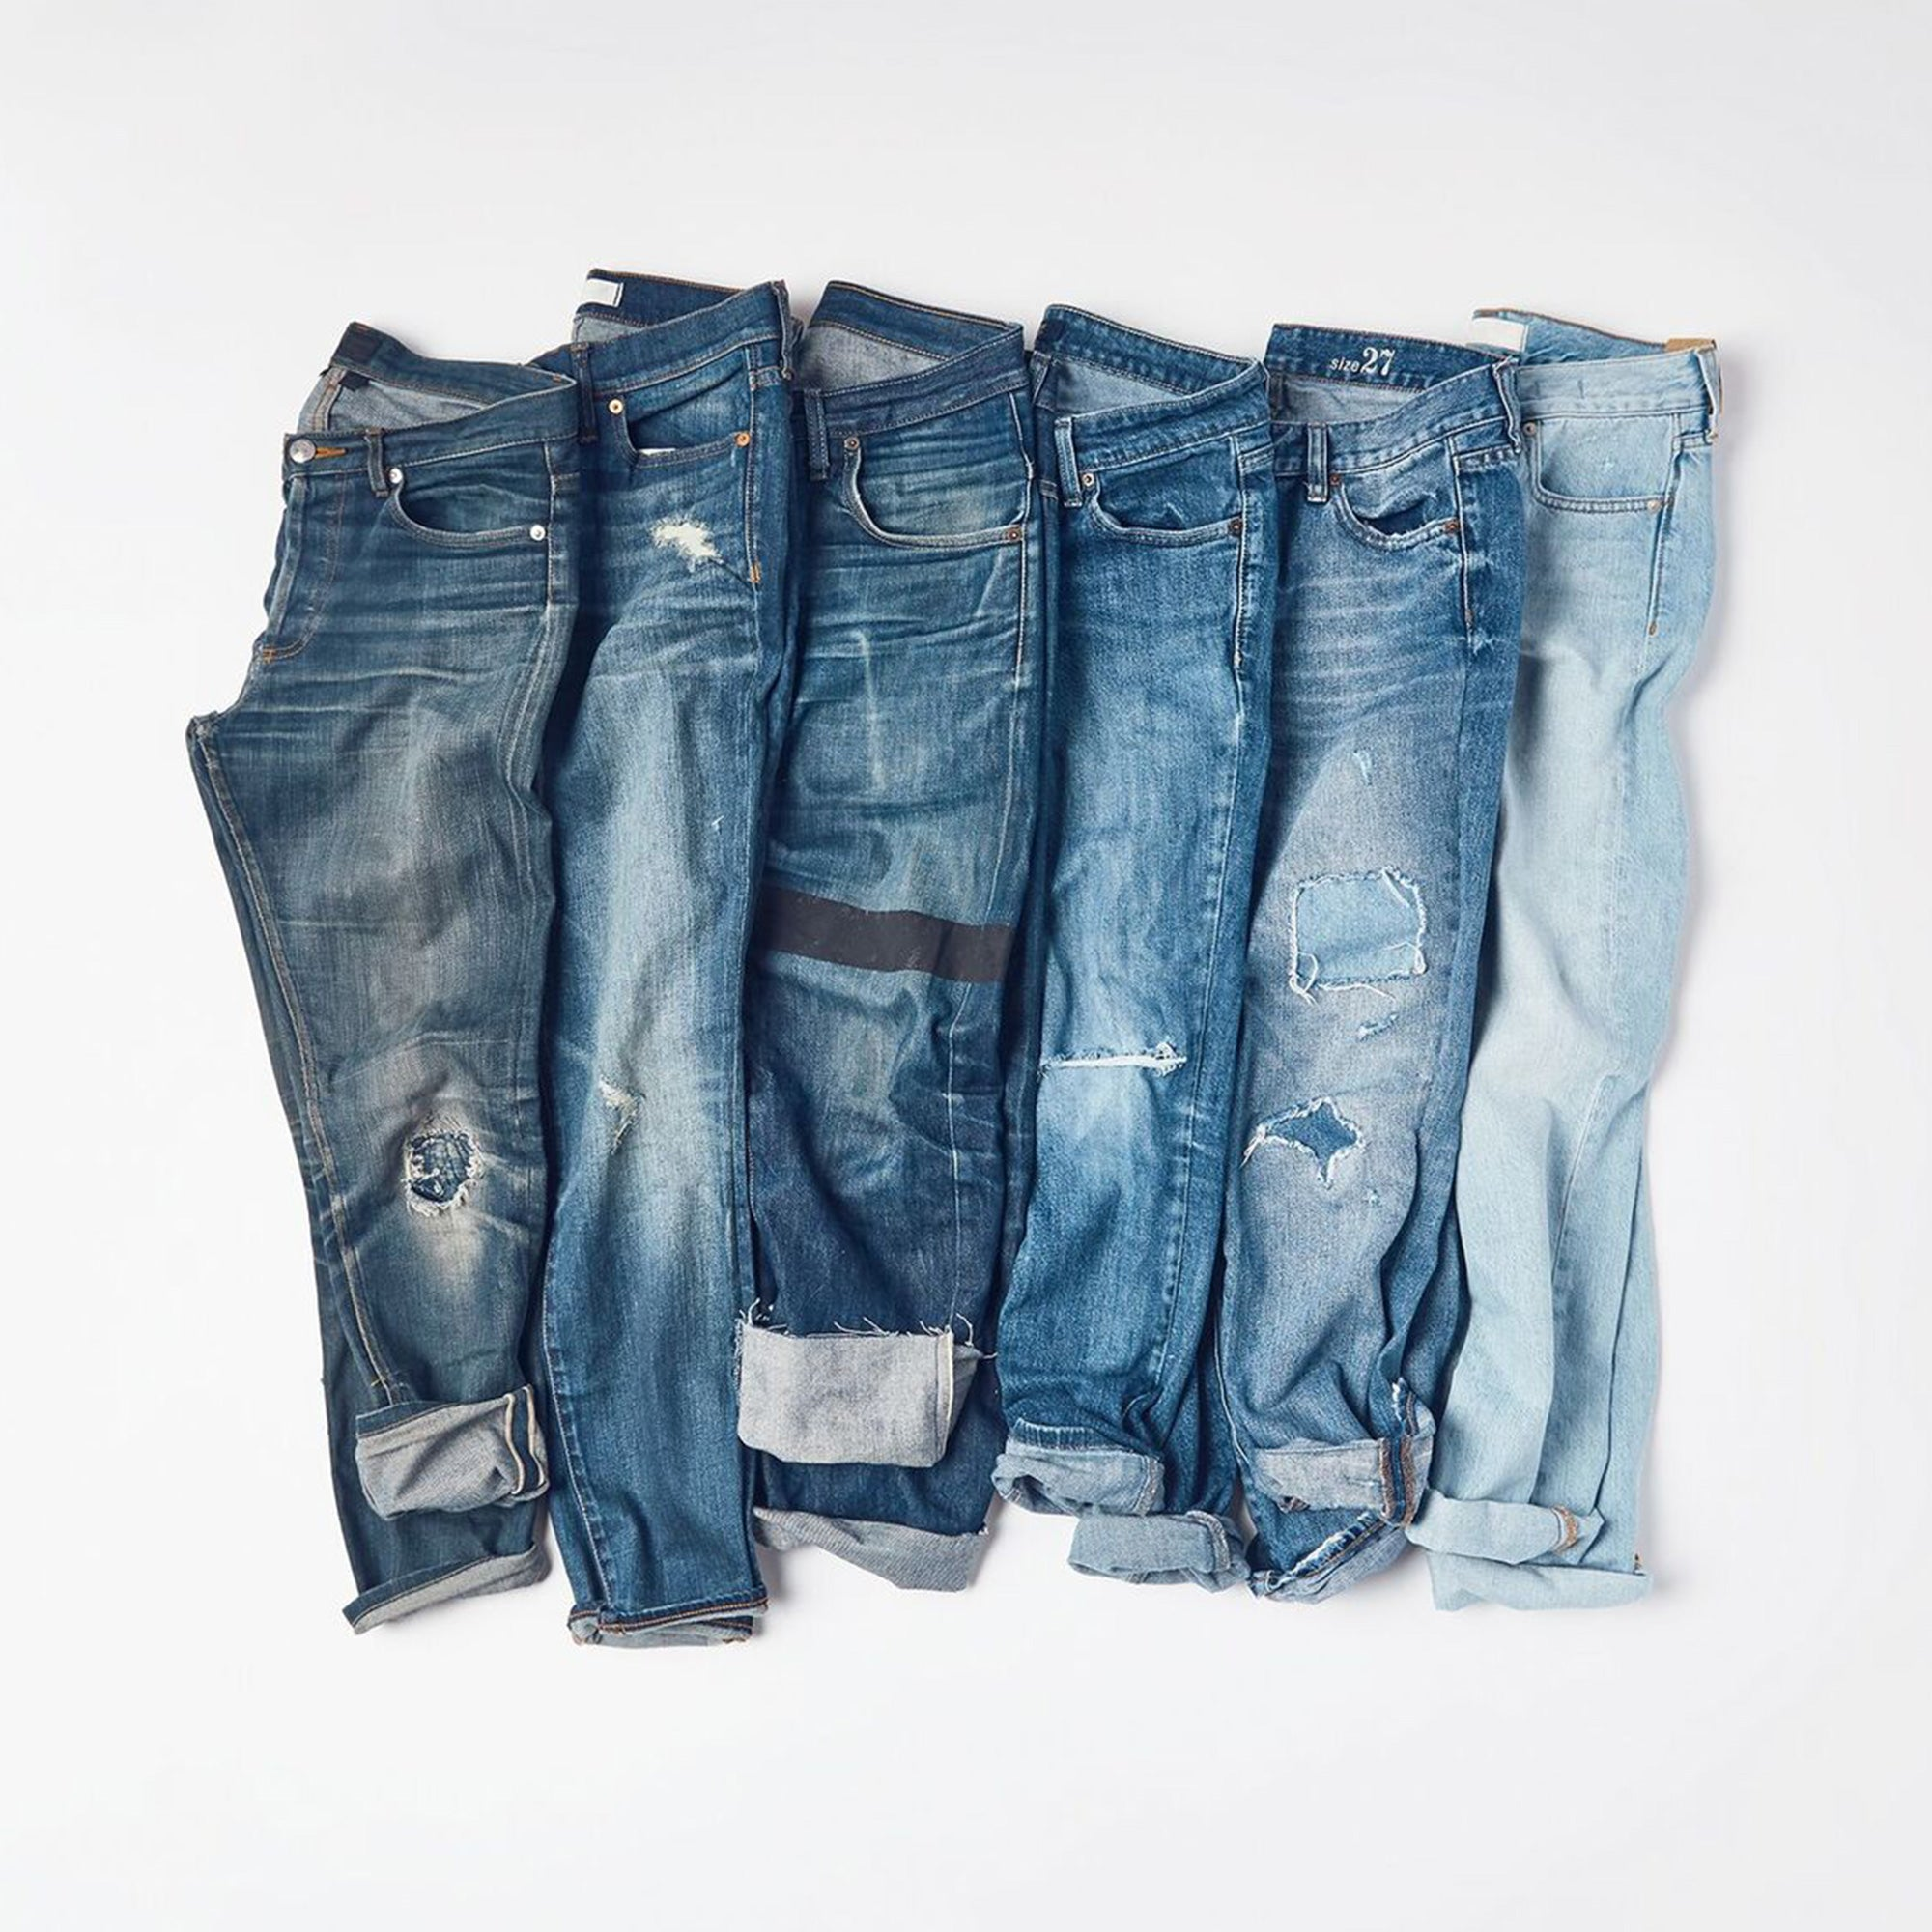 Blue Jeans Go Green™ <br>Denim Recycling Program